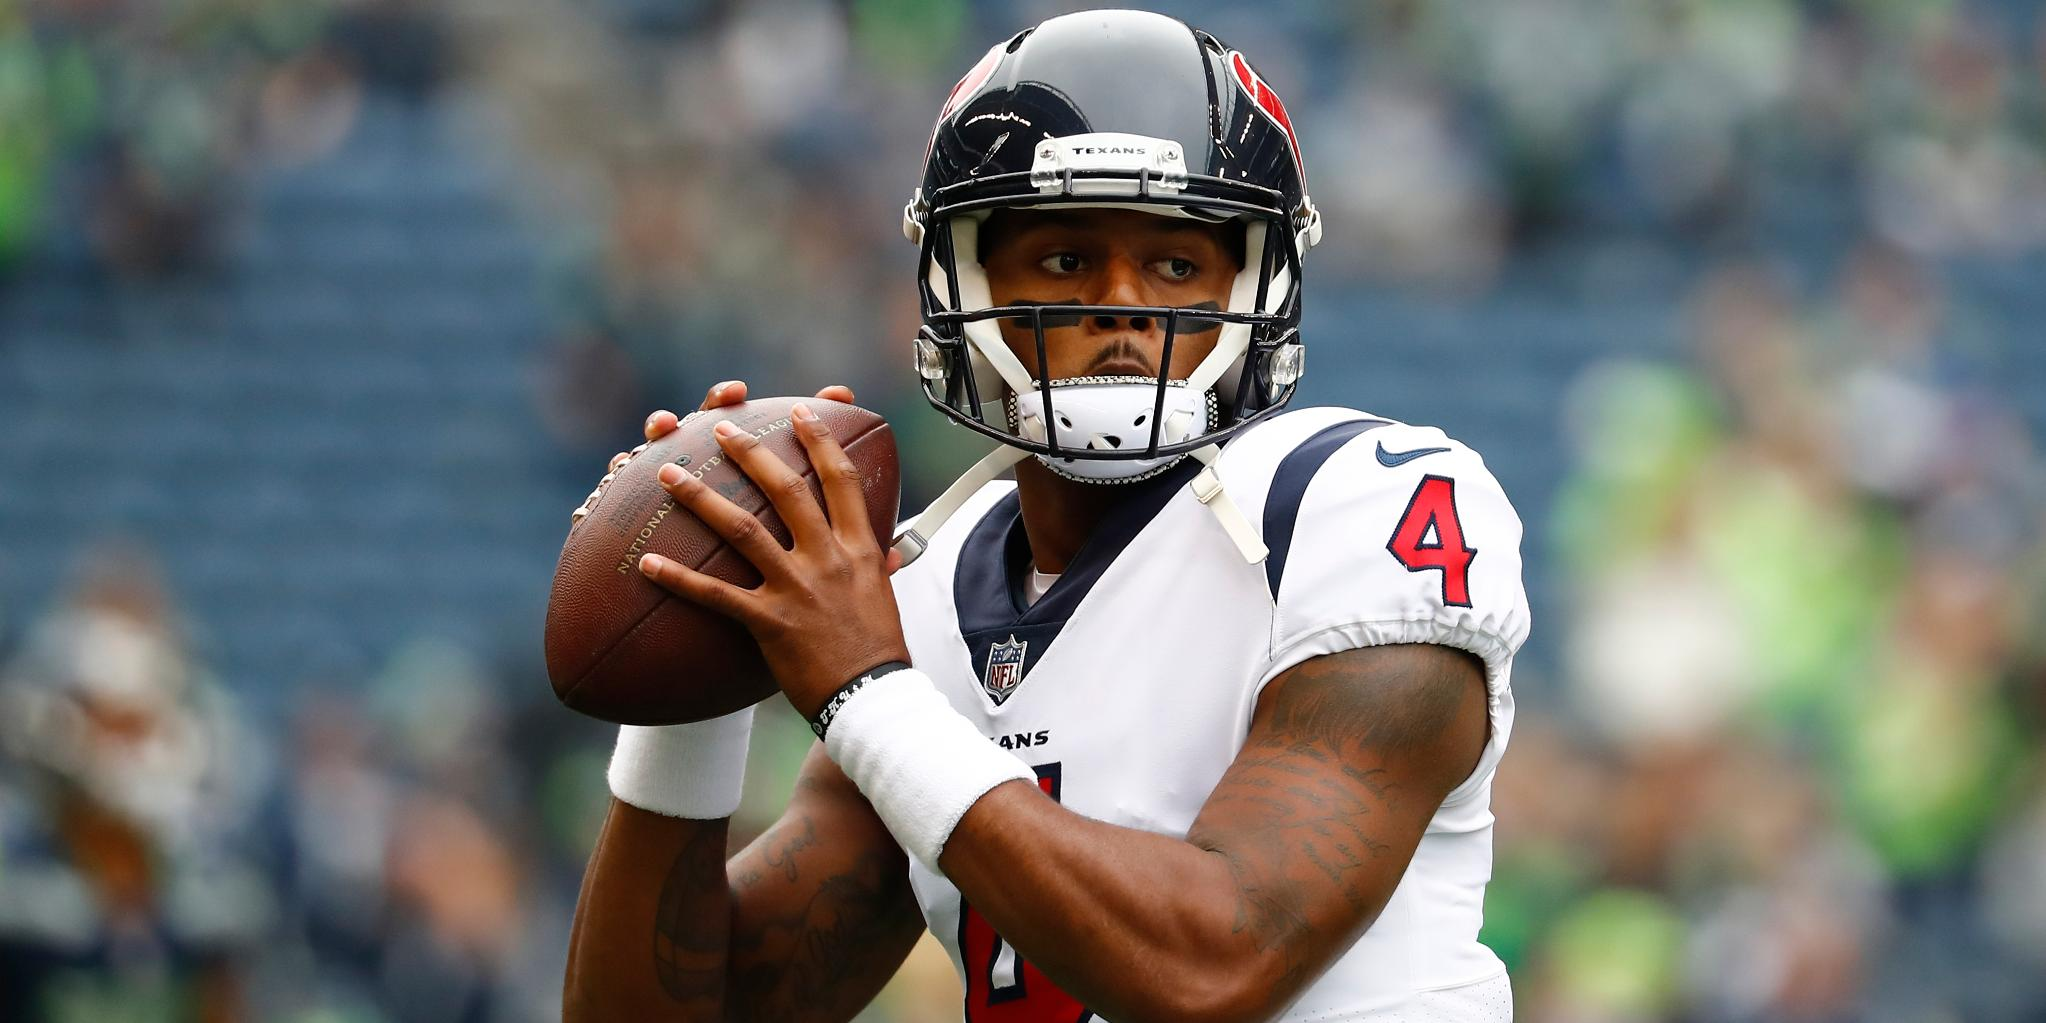 A completely new offense for @deshaunwatson in 2018? https://t.co/S5jnGy77QU https://t.co/3AztI1Spvk